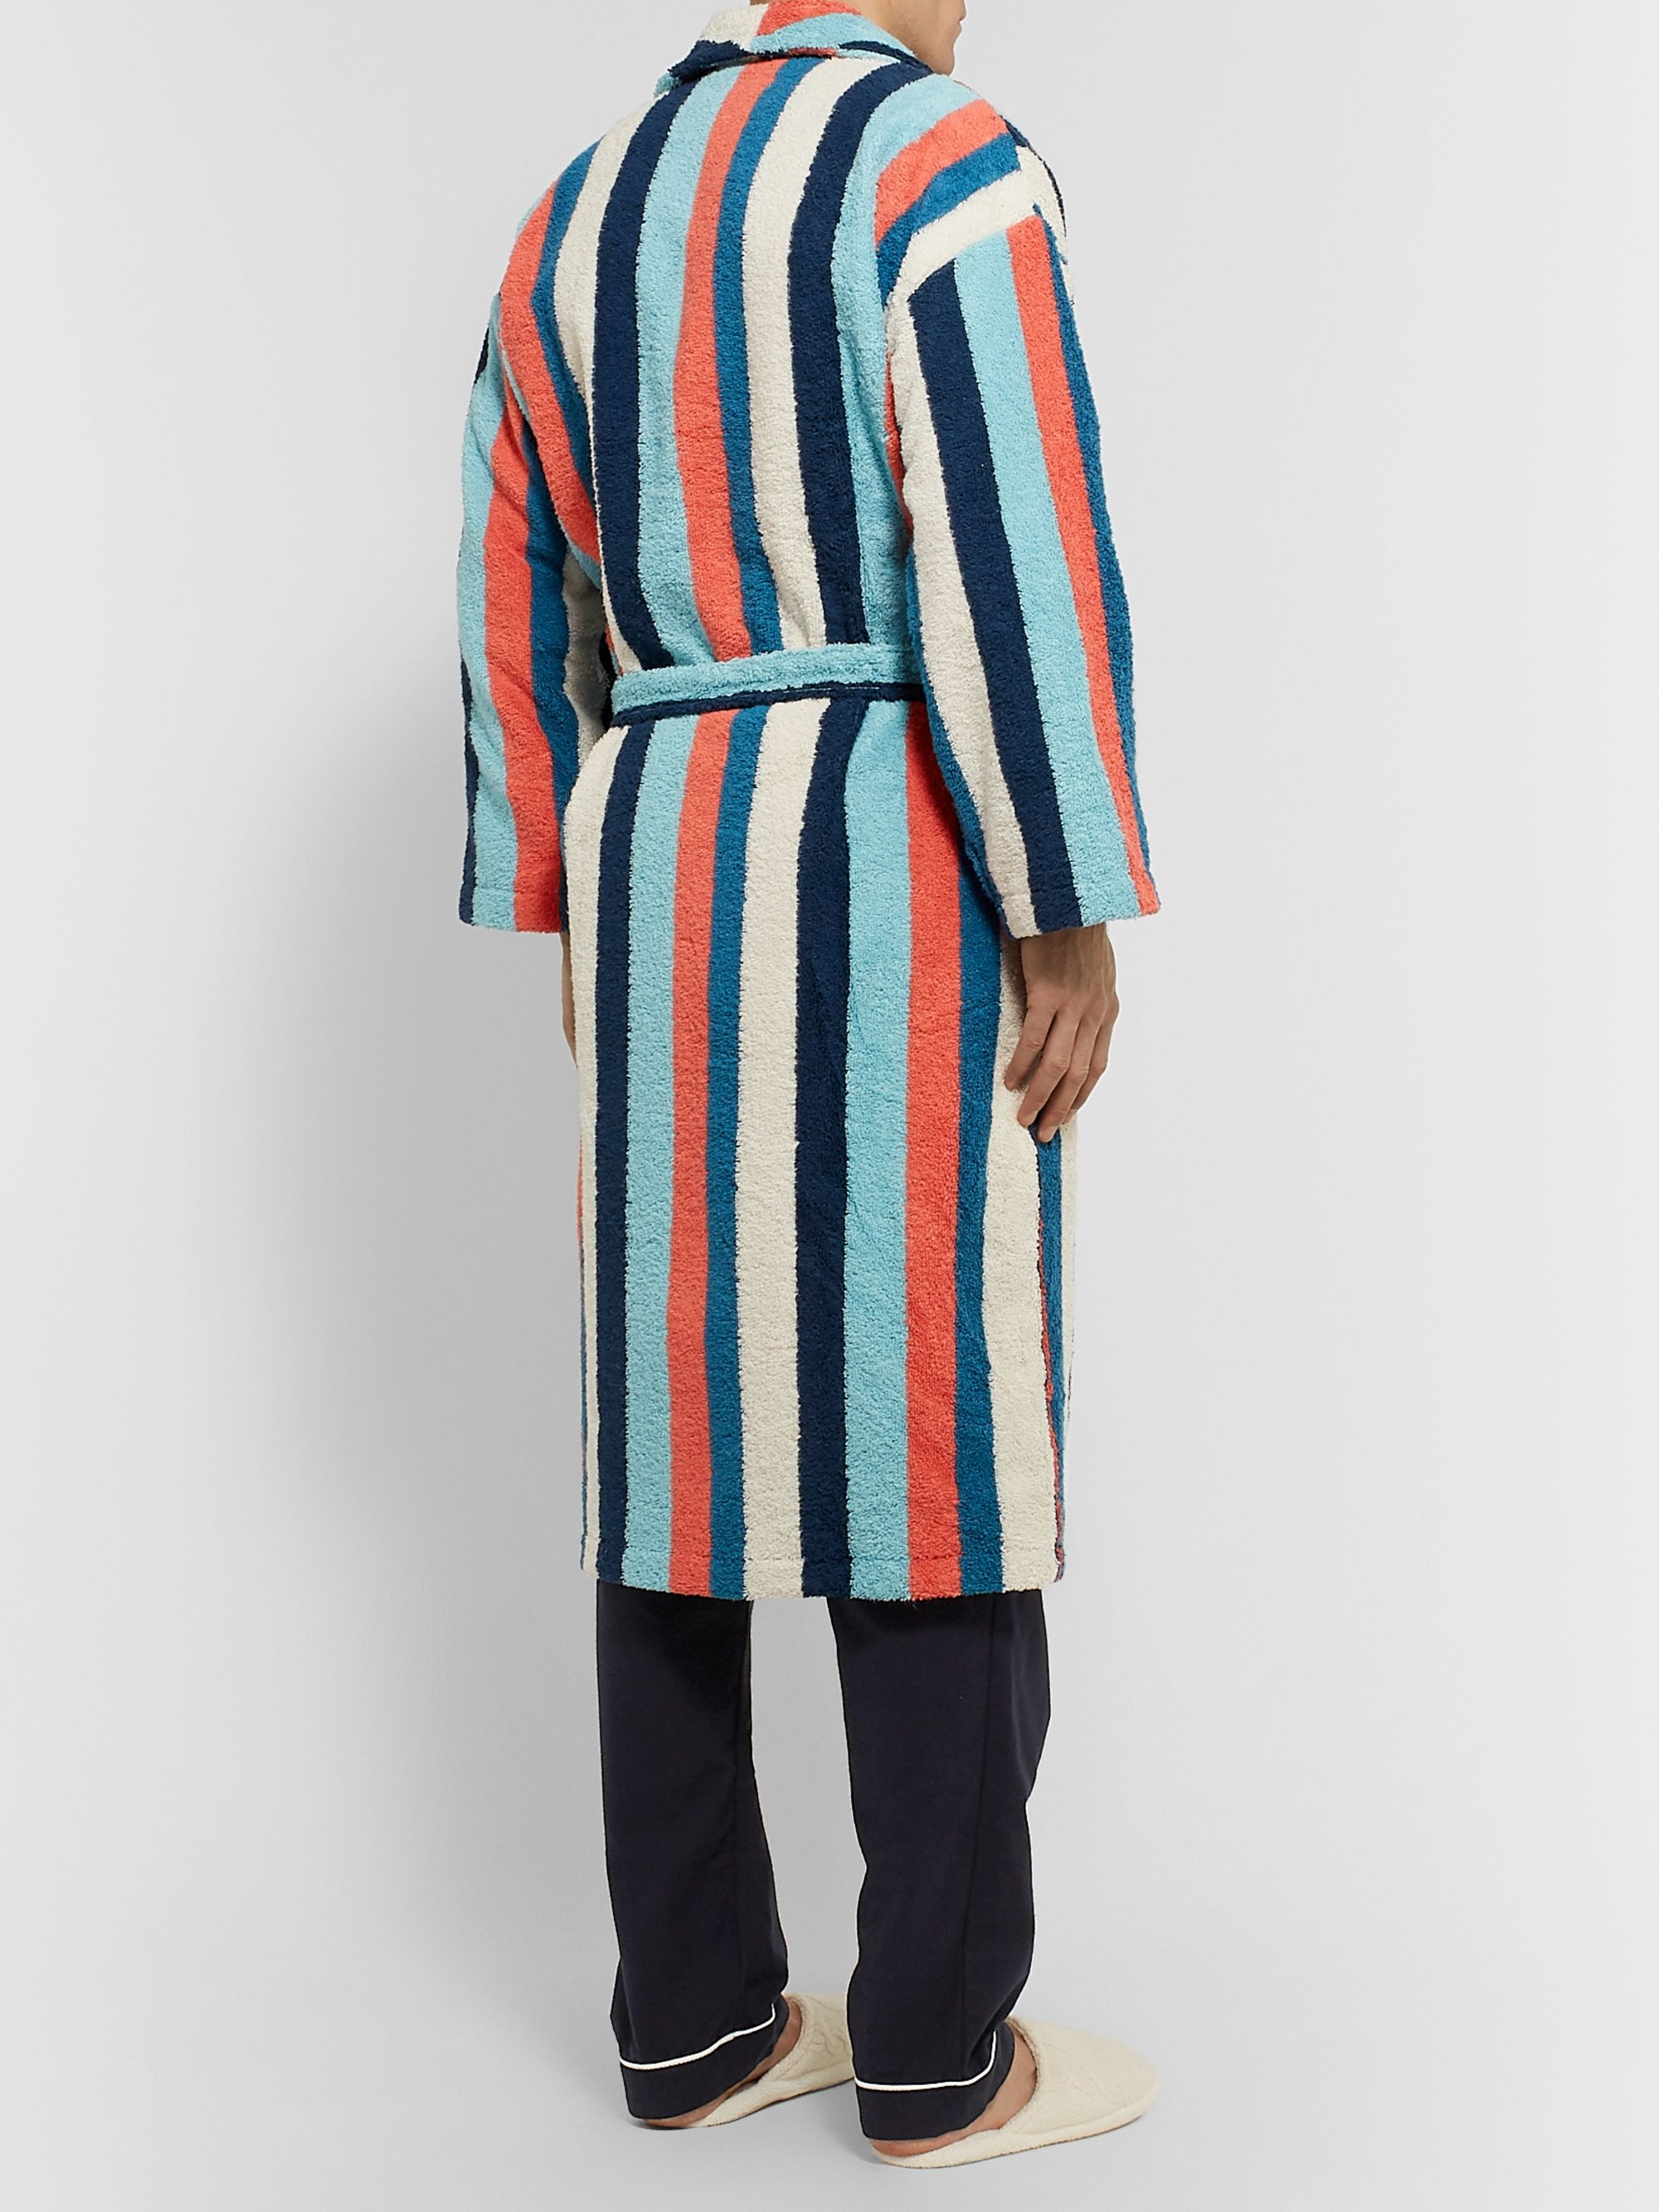 Desmond & Dempsey Striped Cotton-Blend Terry Robe